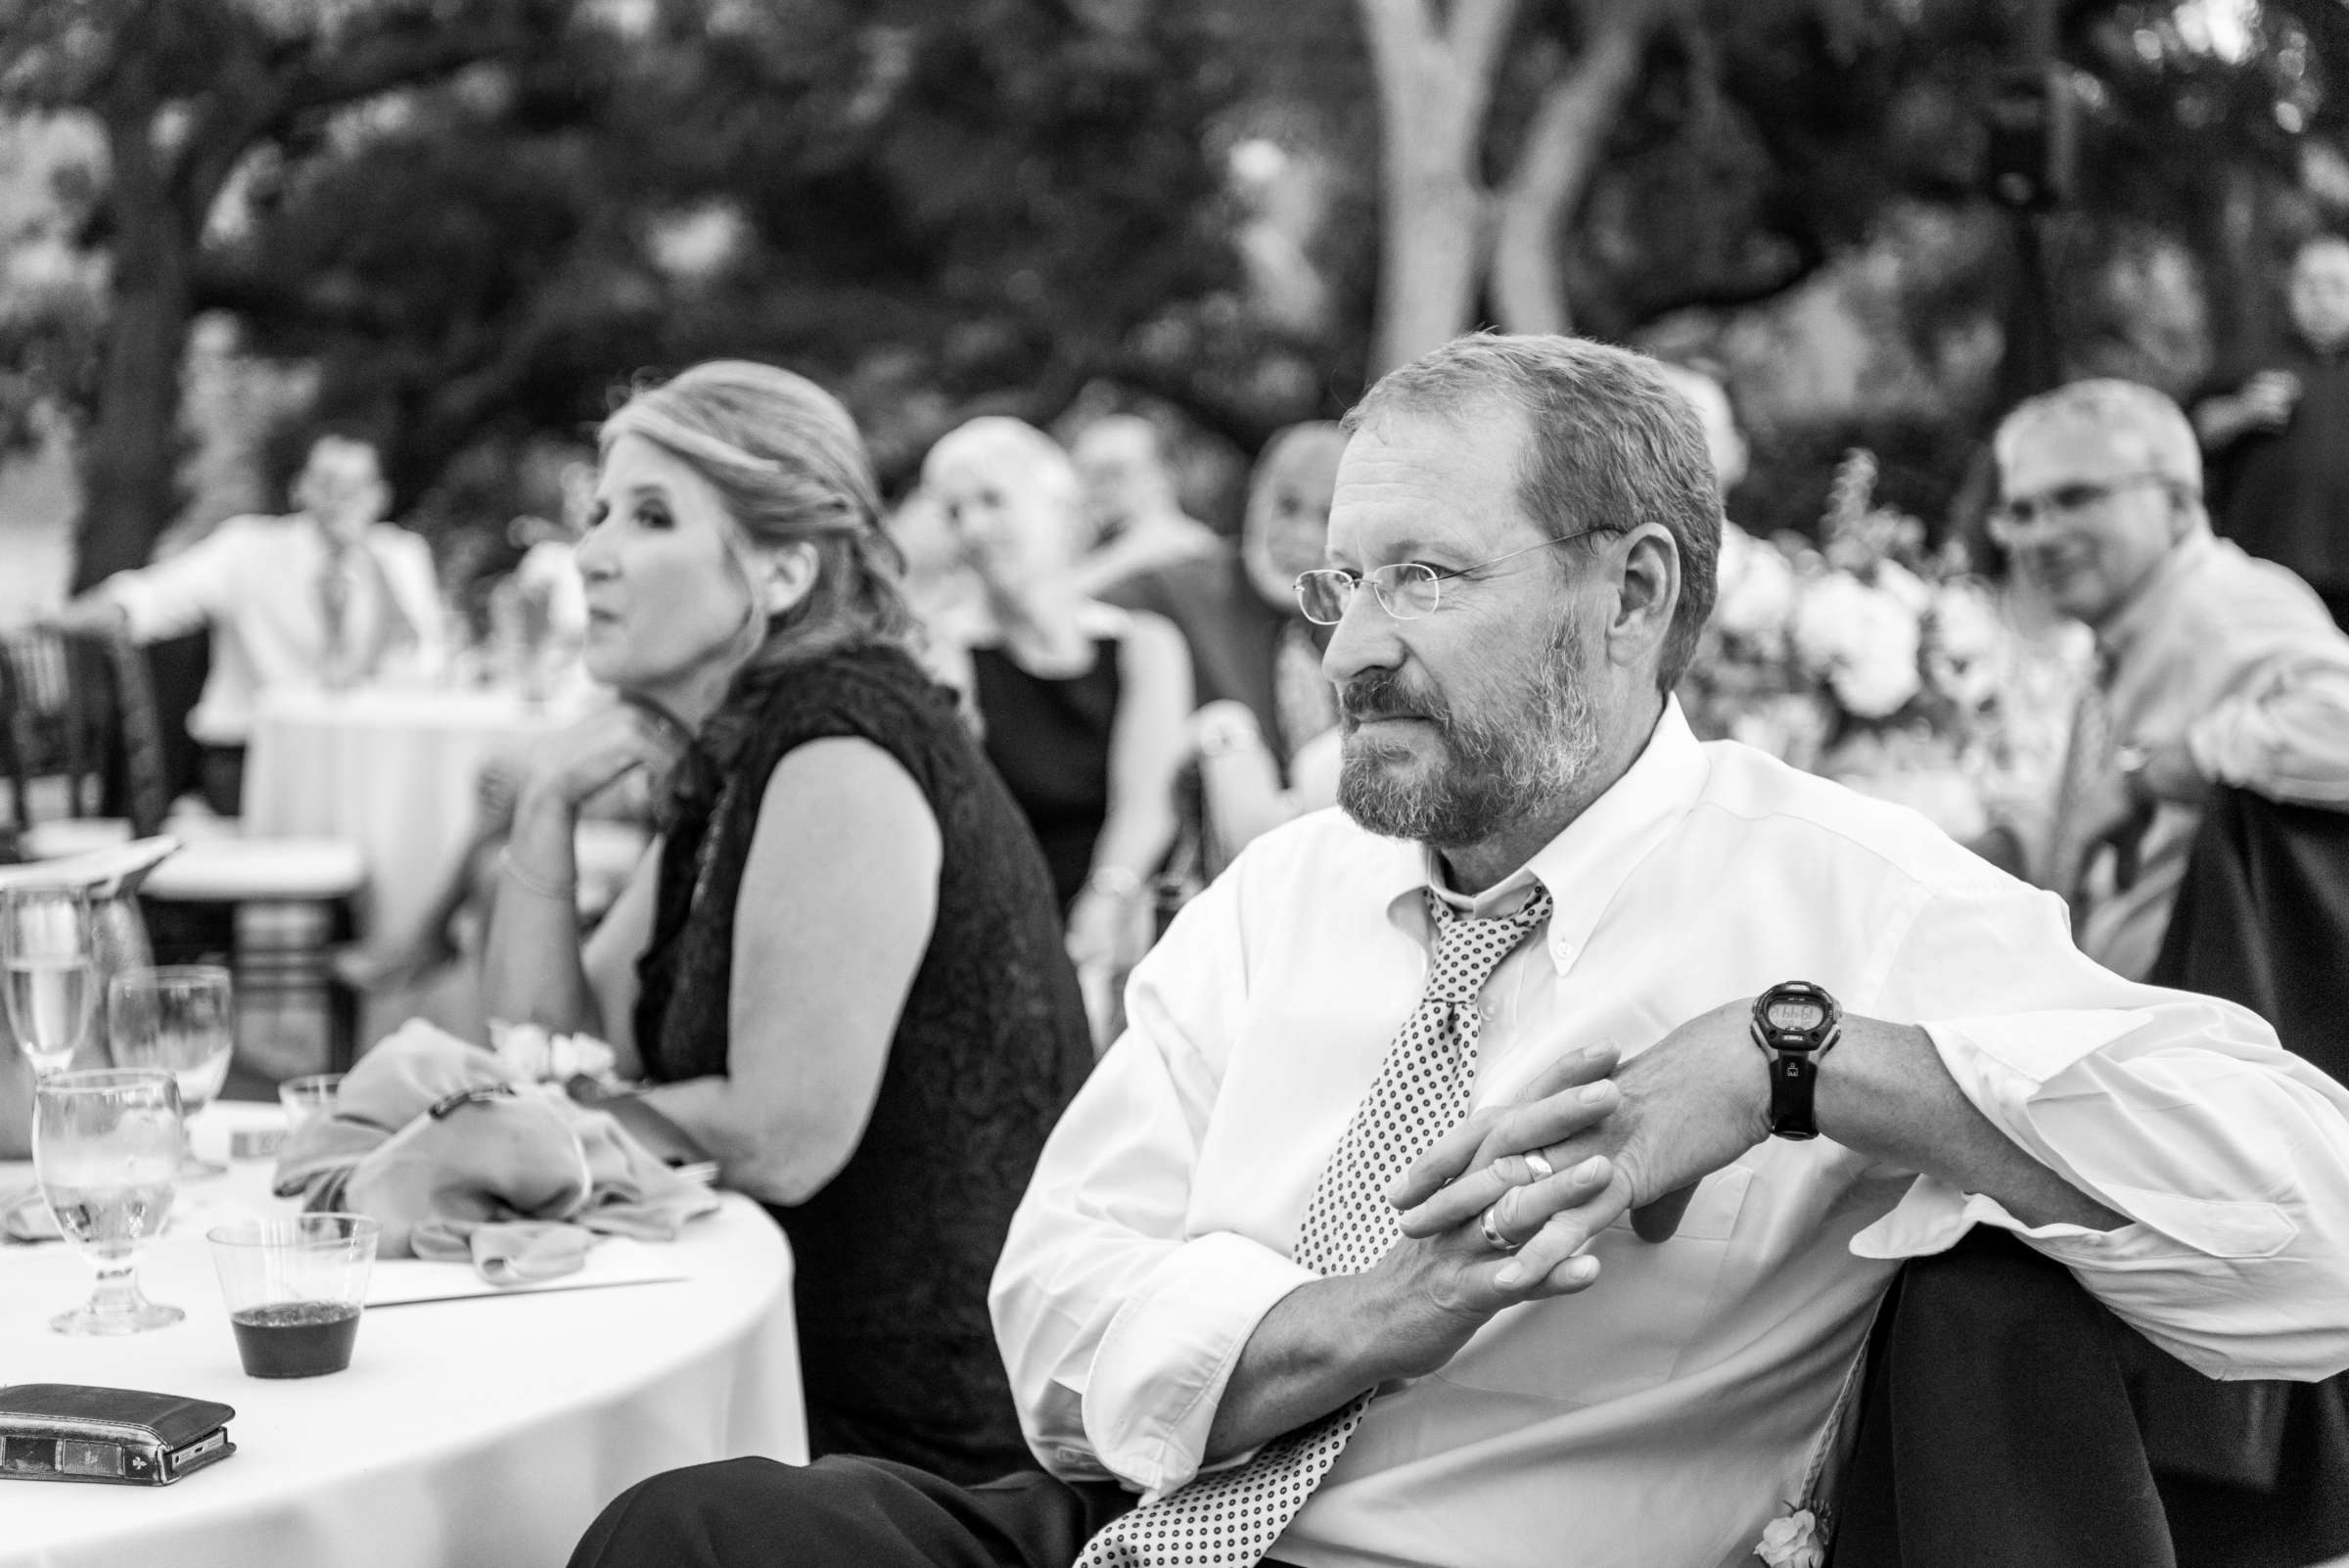 Mt Woodson Castle Wedding coordinated by I Do Weddings, Aya and Jared Wedding Photo #487001 by True Photography